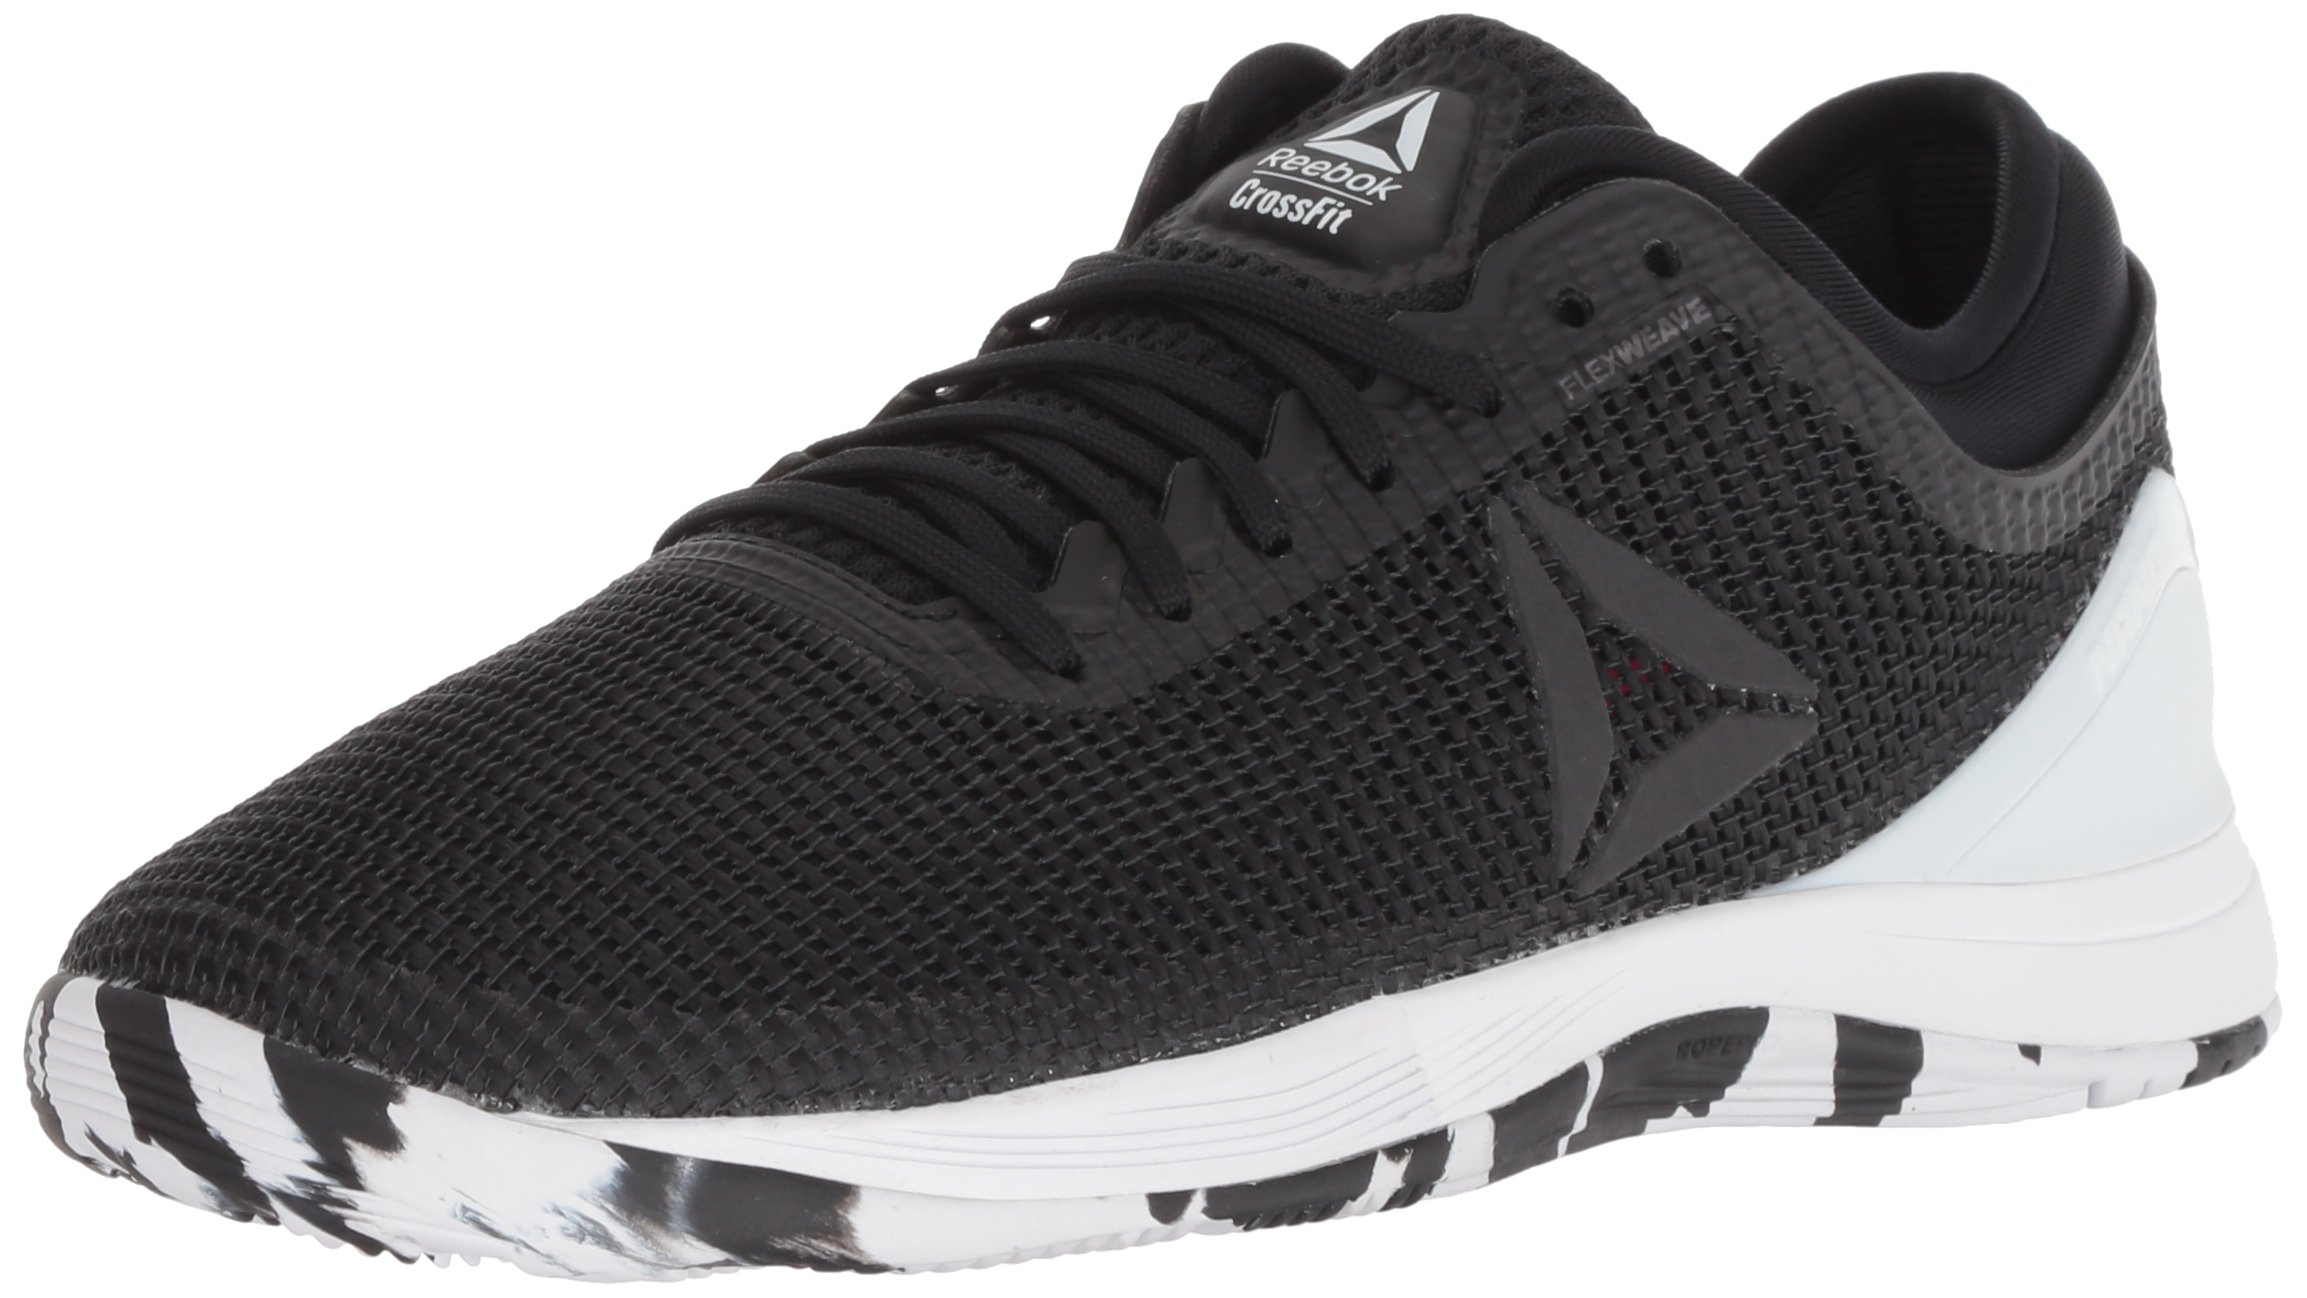 Reebok Women's CROSSFIT Nano 8.0 Flexweave Cross Trainer, Black/White/Twisted Pink, 5 M US by Reebok (Image #1)